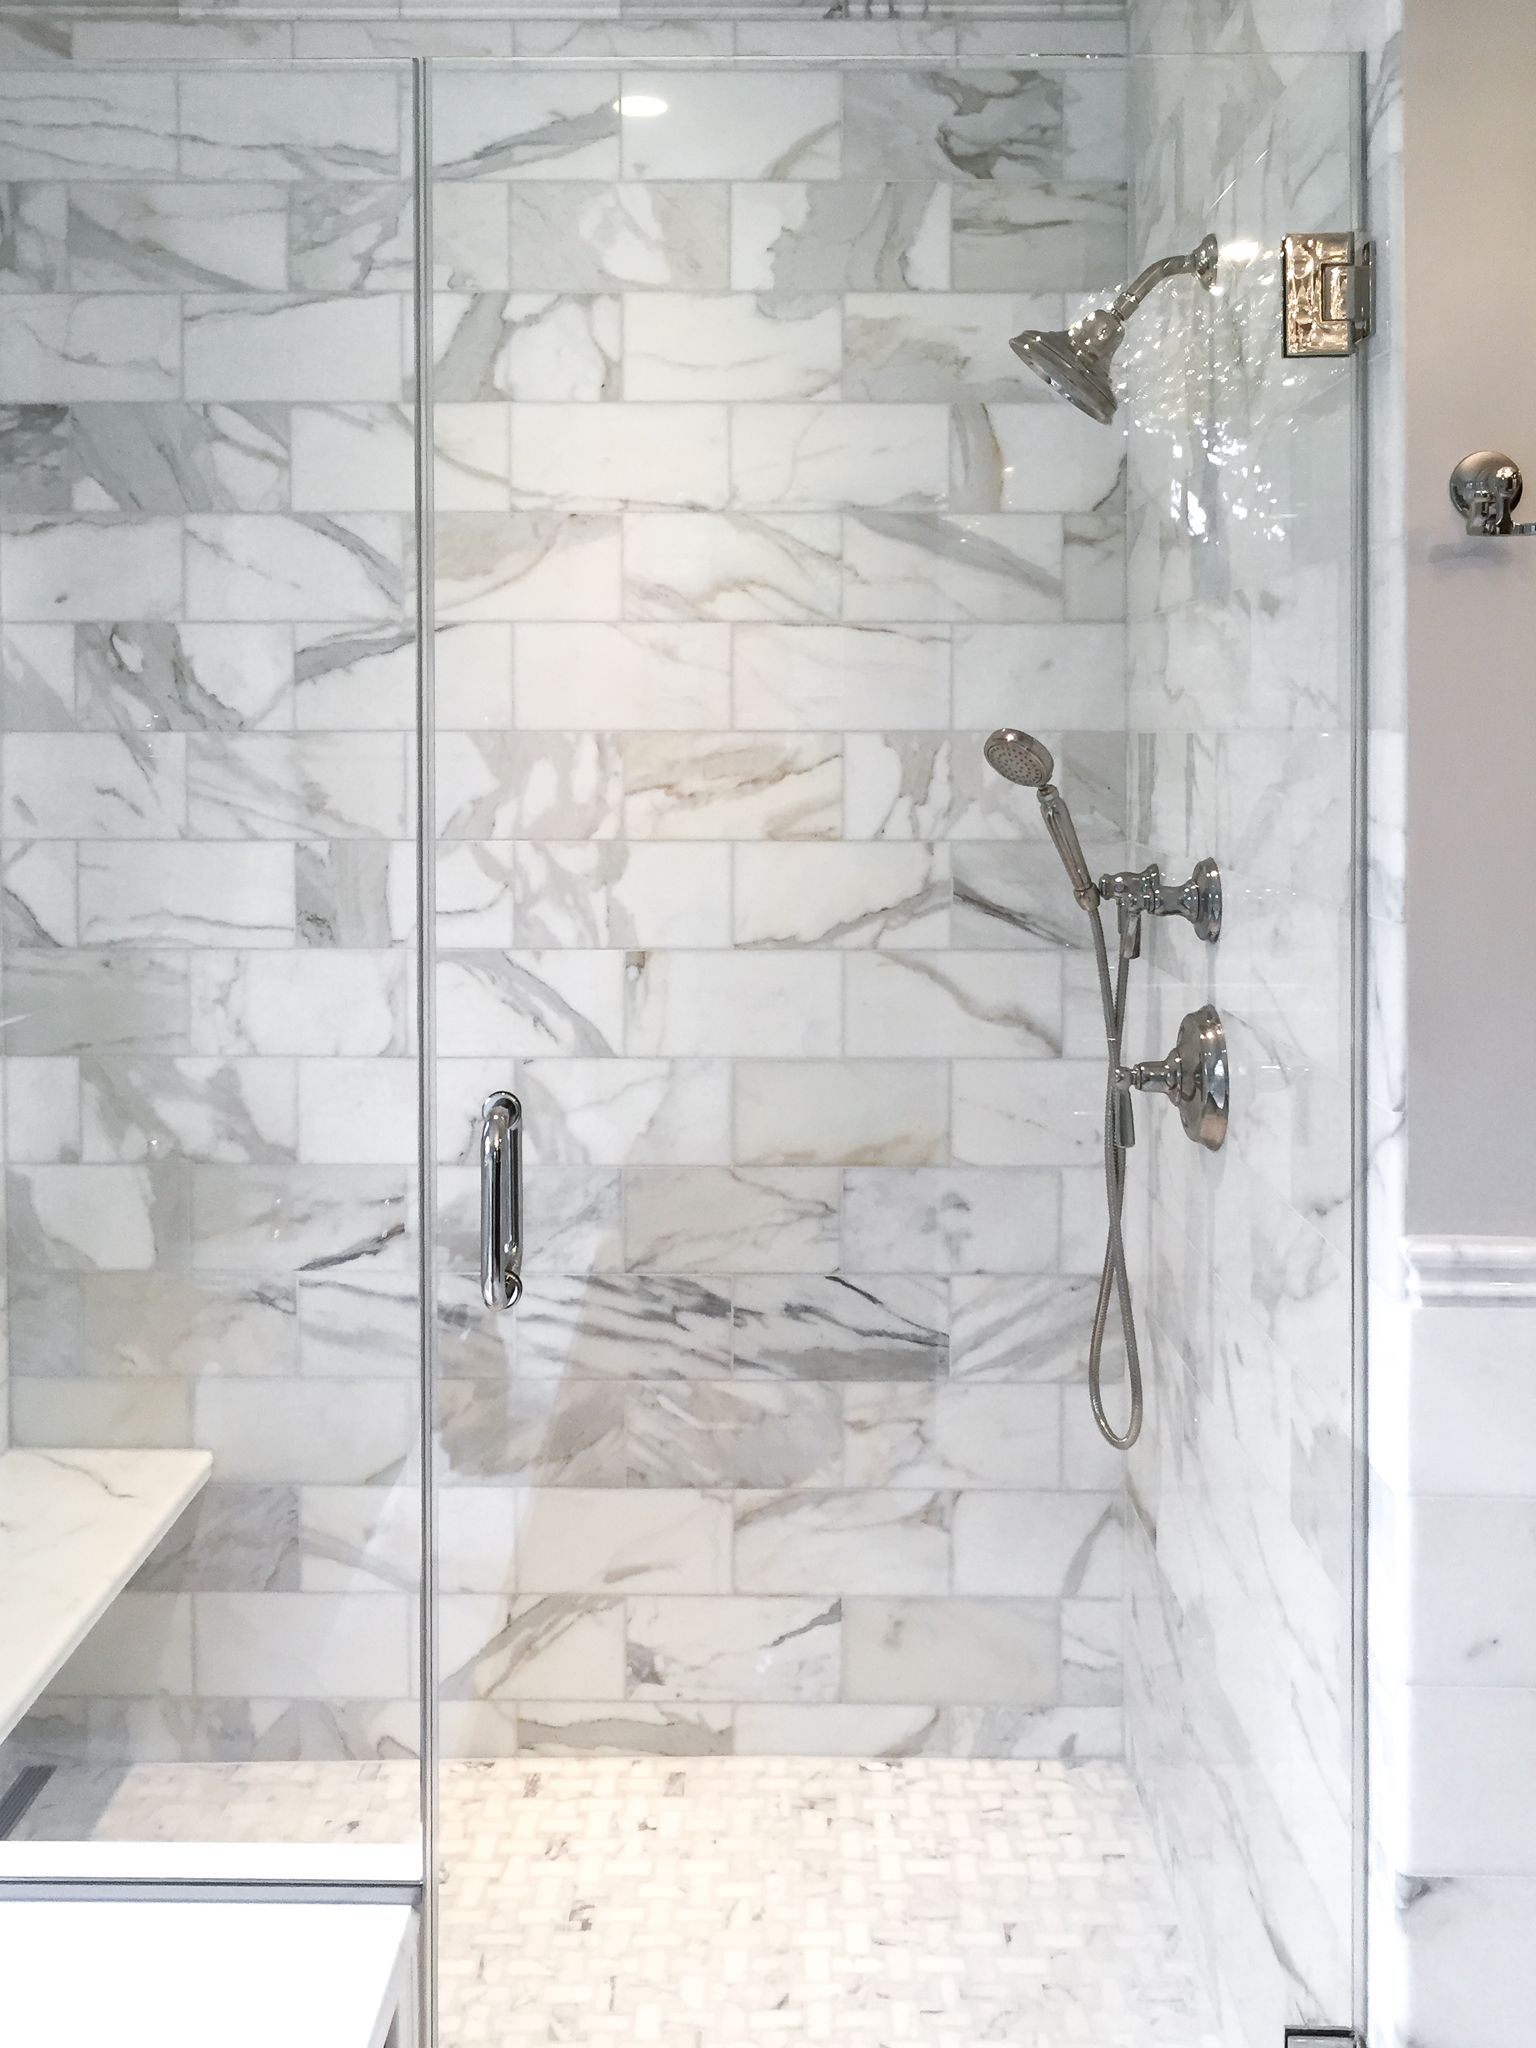 artistic tile i this master bathroom is